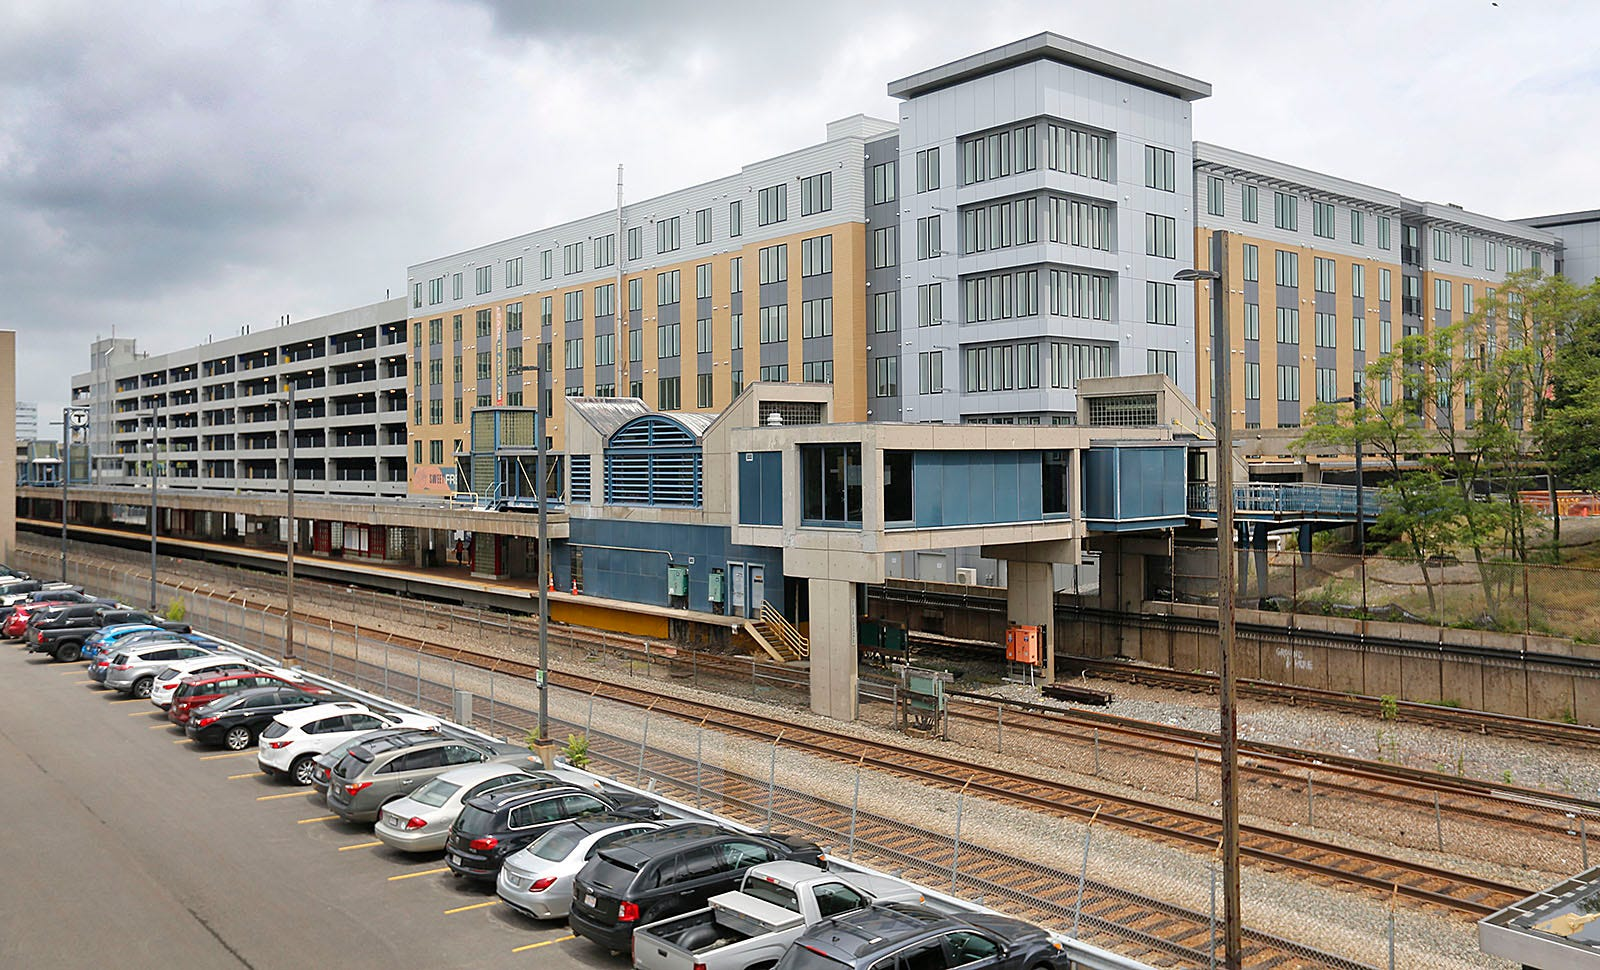 The first phase of a three-building residential apartment complex called The Abby sits over the North Quincy MBTA station. The project will have several retail spaces and be anchored by a Target store.